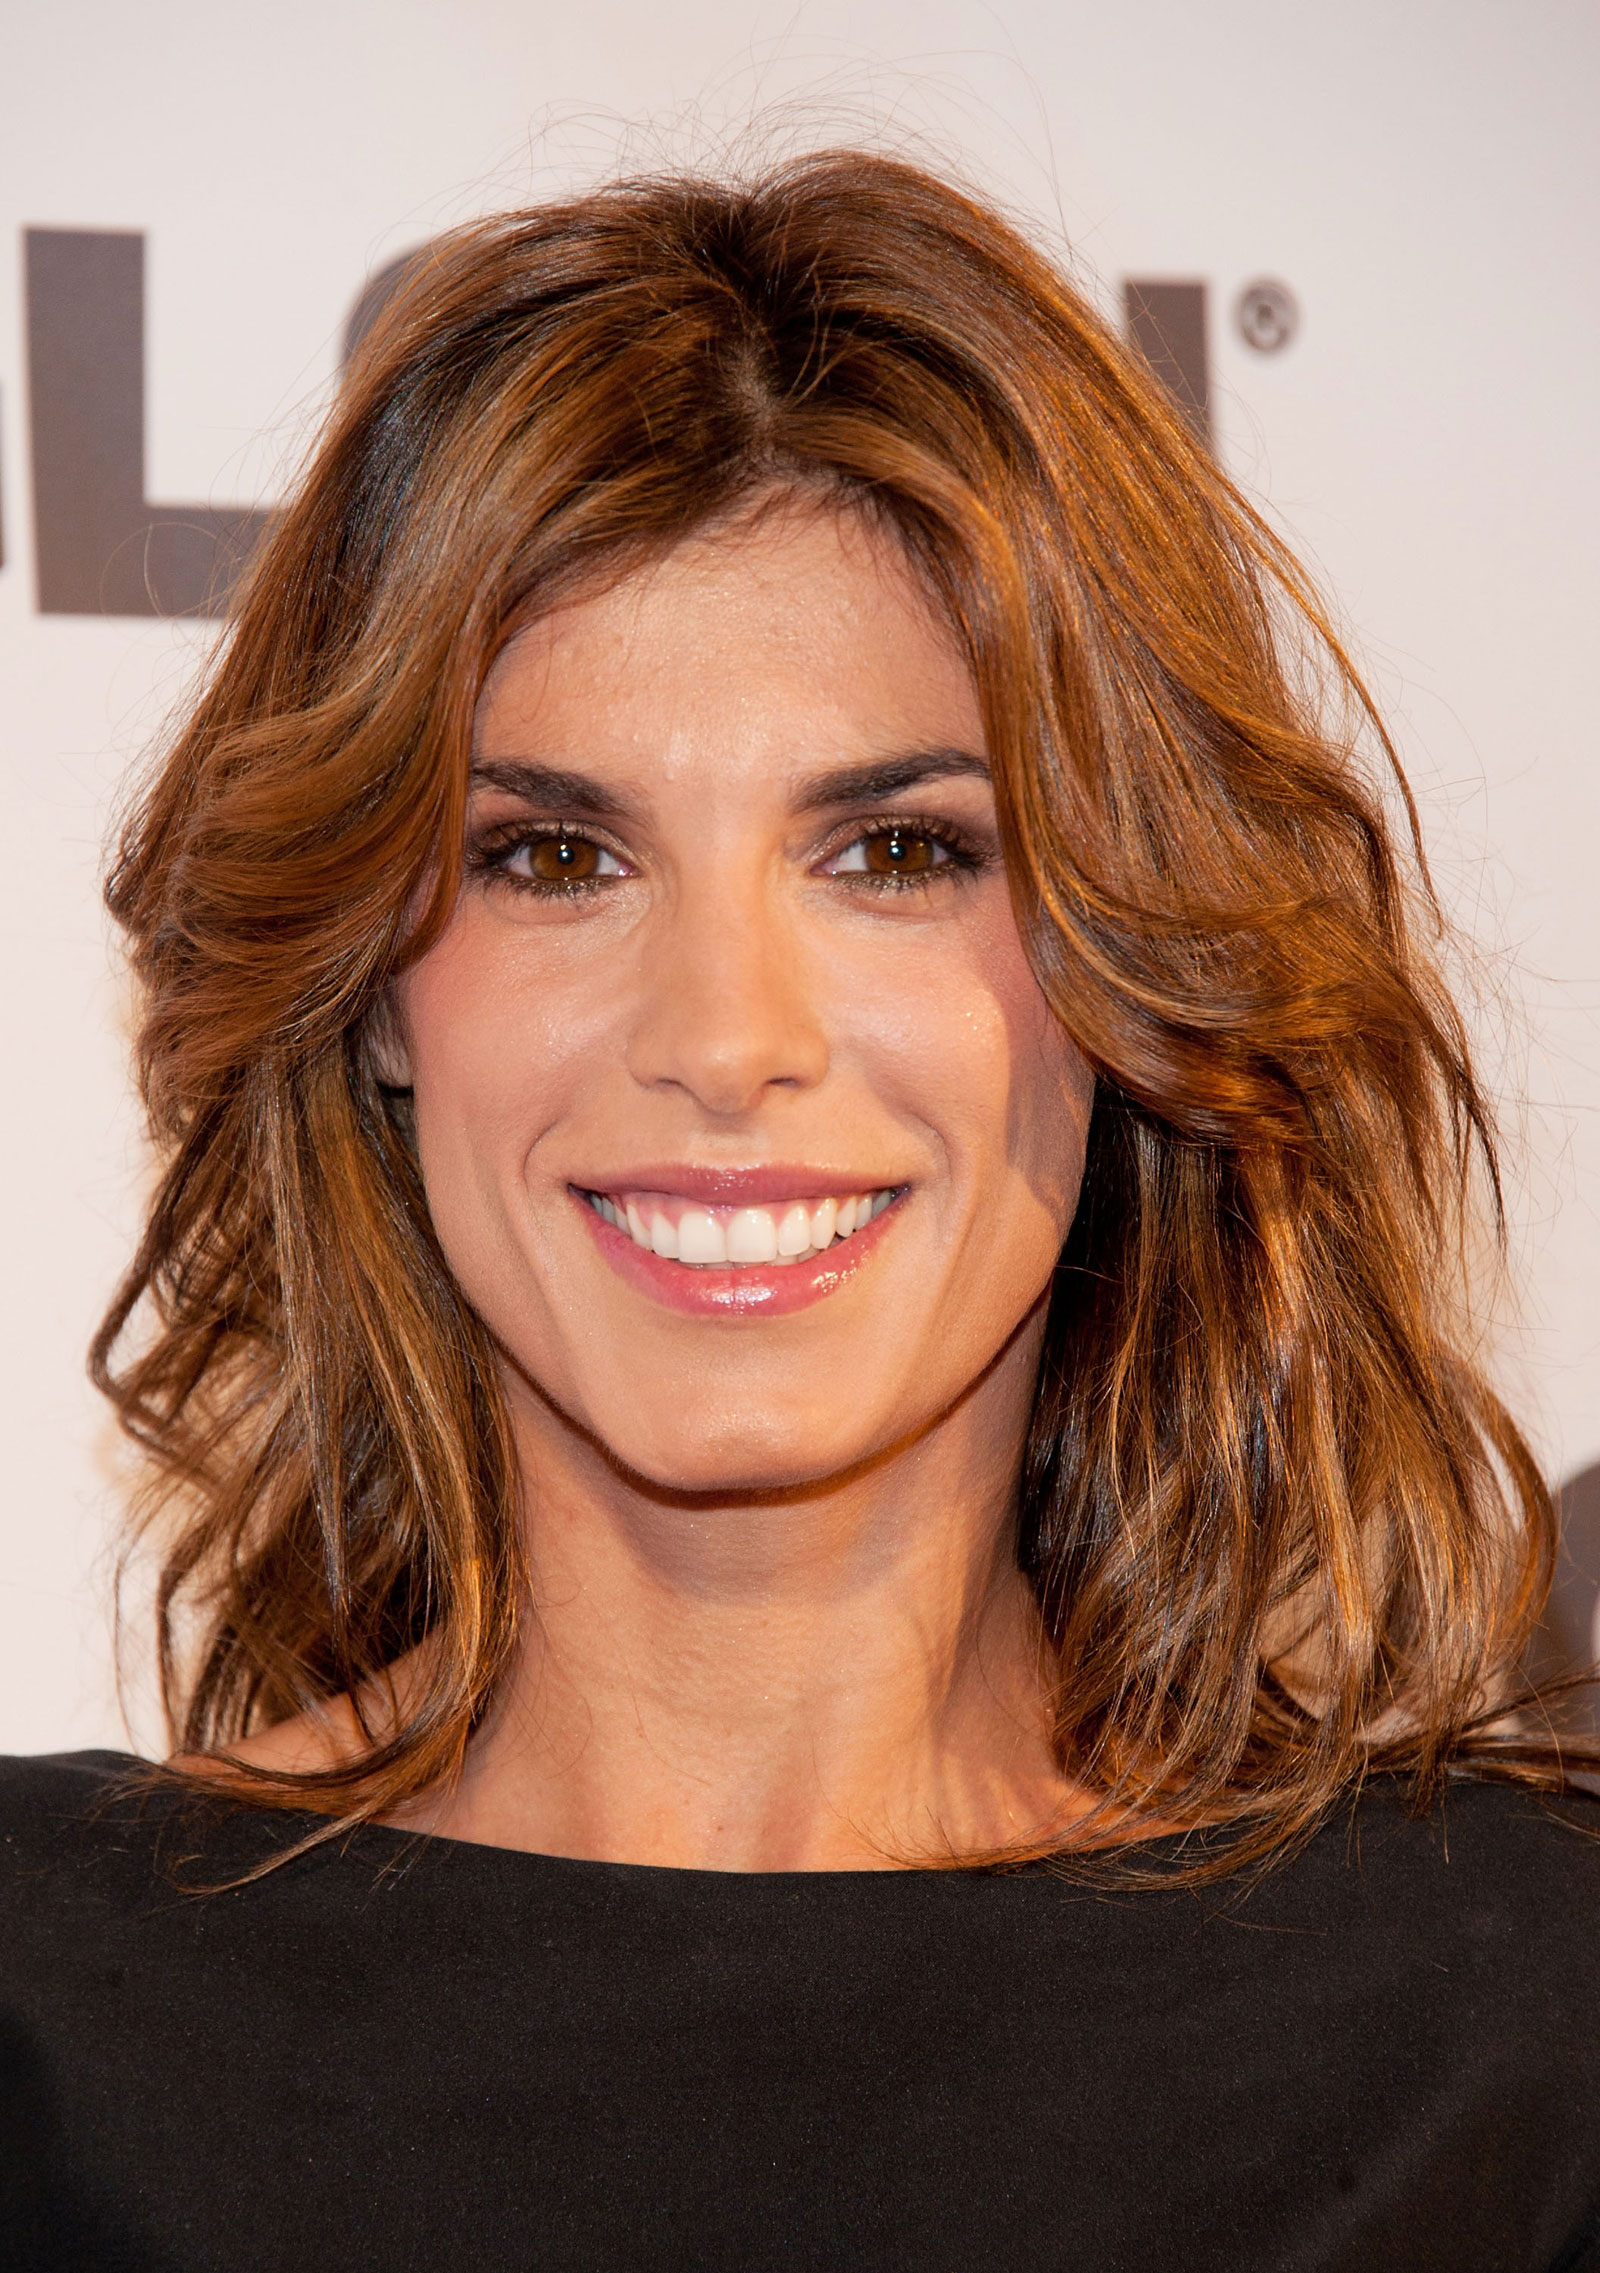 Elisabetta canalis wallpapers high quality download free voltagebd Choice Image